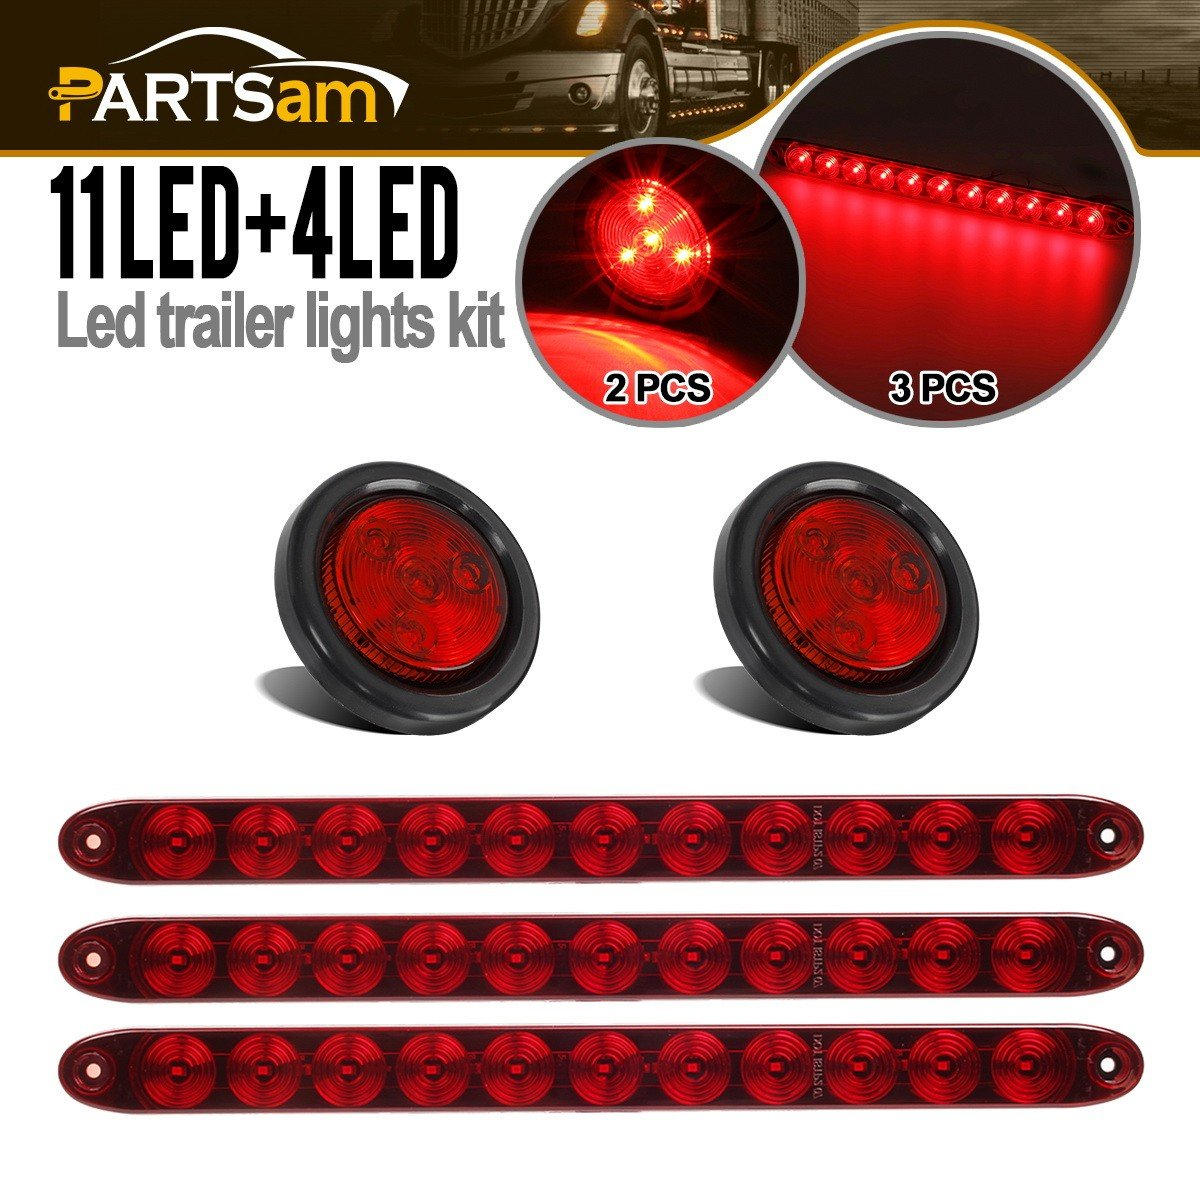 Submersible LED Over 80'' Trailer Light Kit, 15'' Inch Red Brake Stop Turn ID Light Bar Trailer Truck RV - Multifunction, Red Sealed Trailer Clearance and Side Marker Lights w Grommets and Pigtails